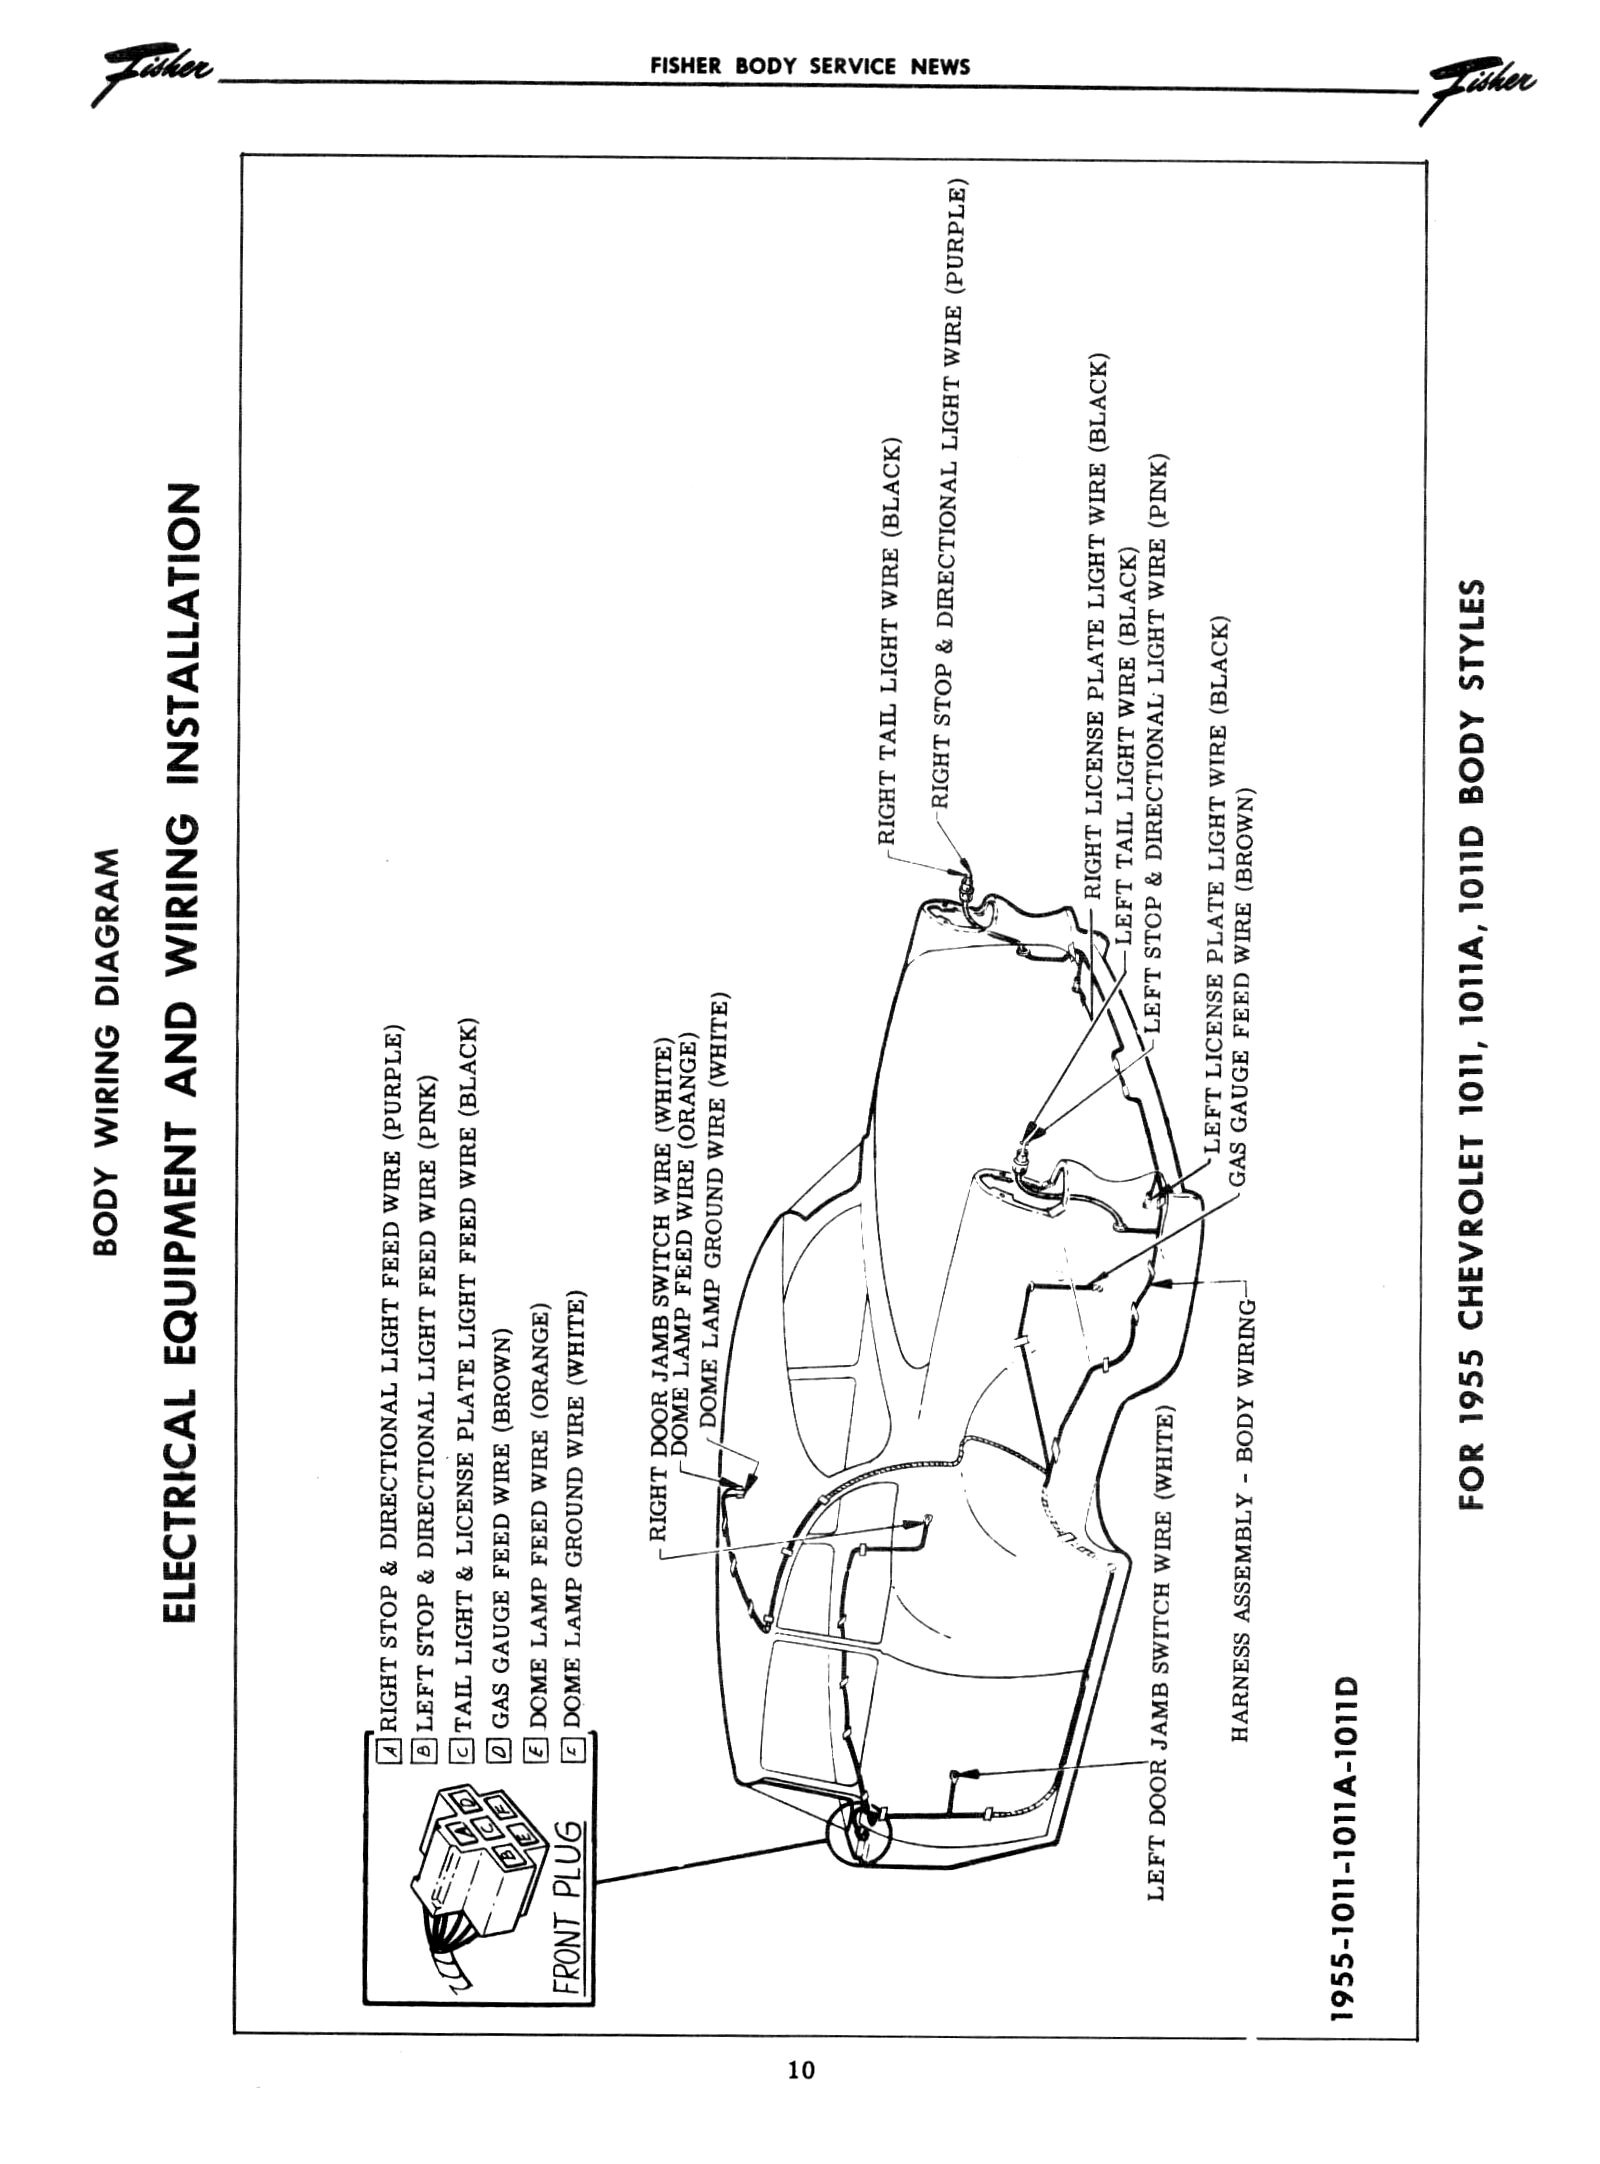 1951 Chevy Truck Headlight Switch Wiring Schematics Diagram Chevrolet 1954 Ford